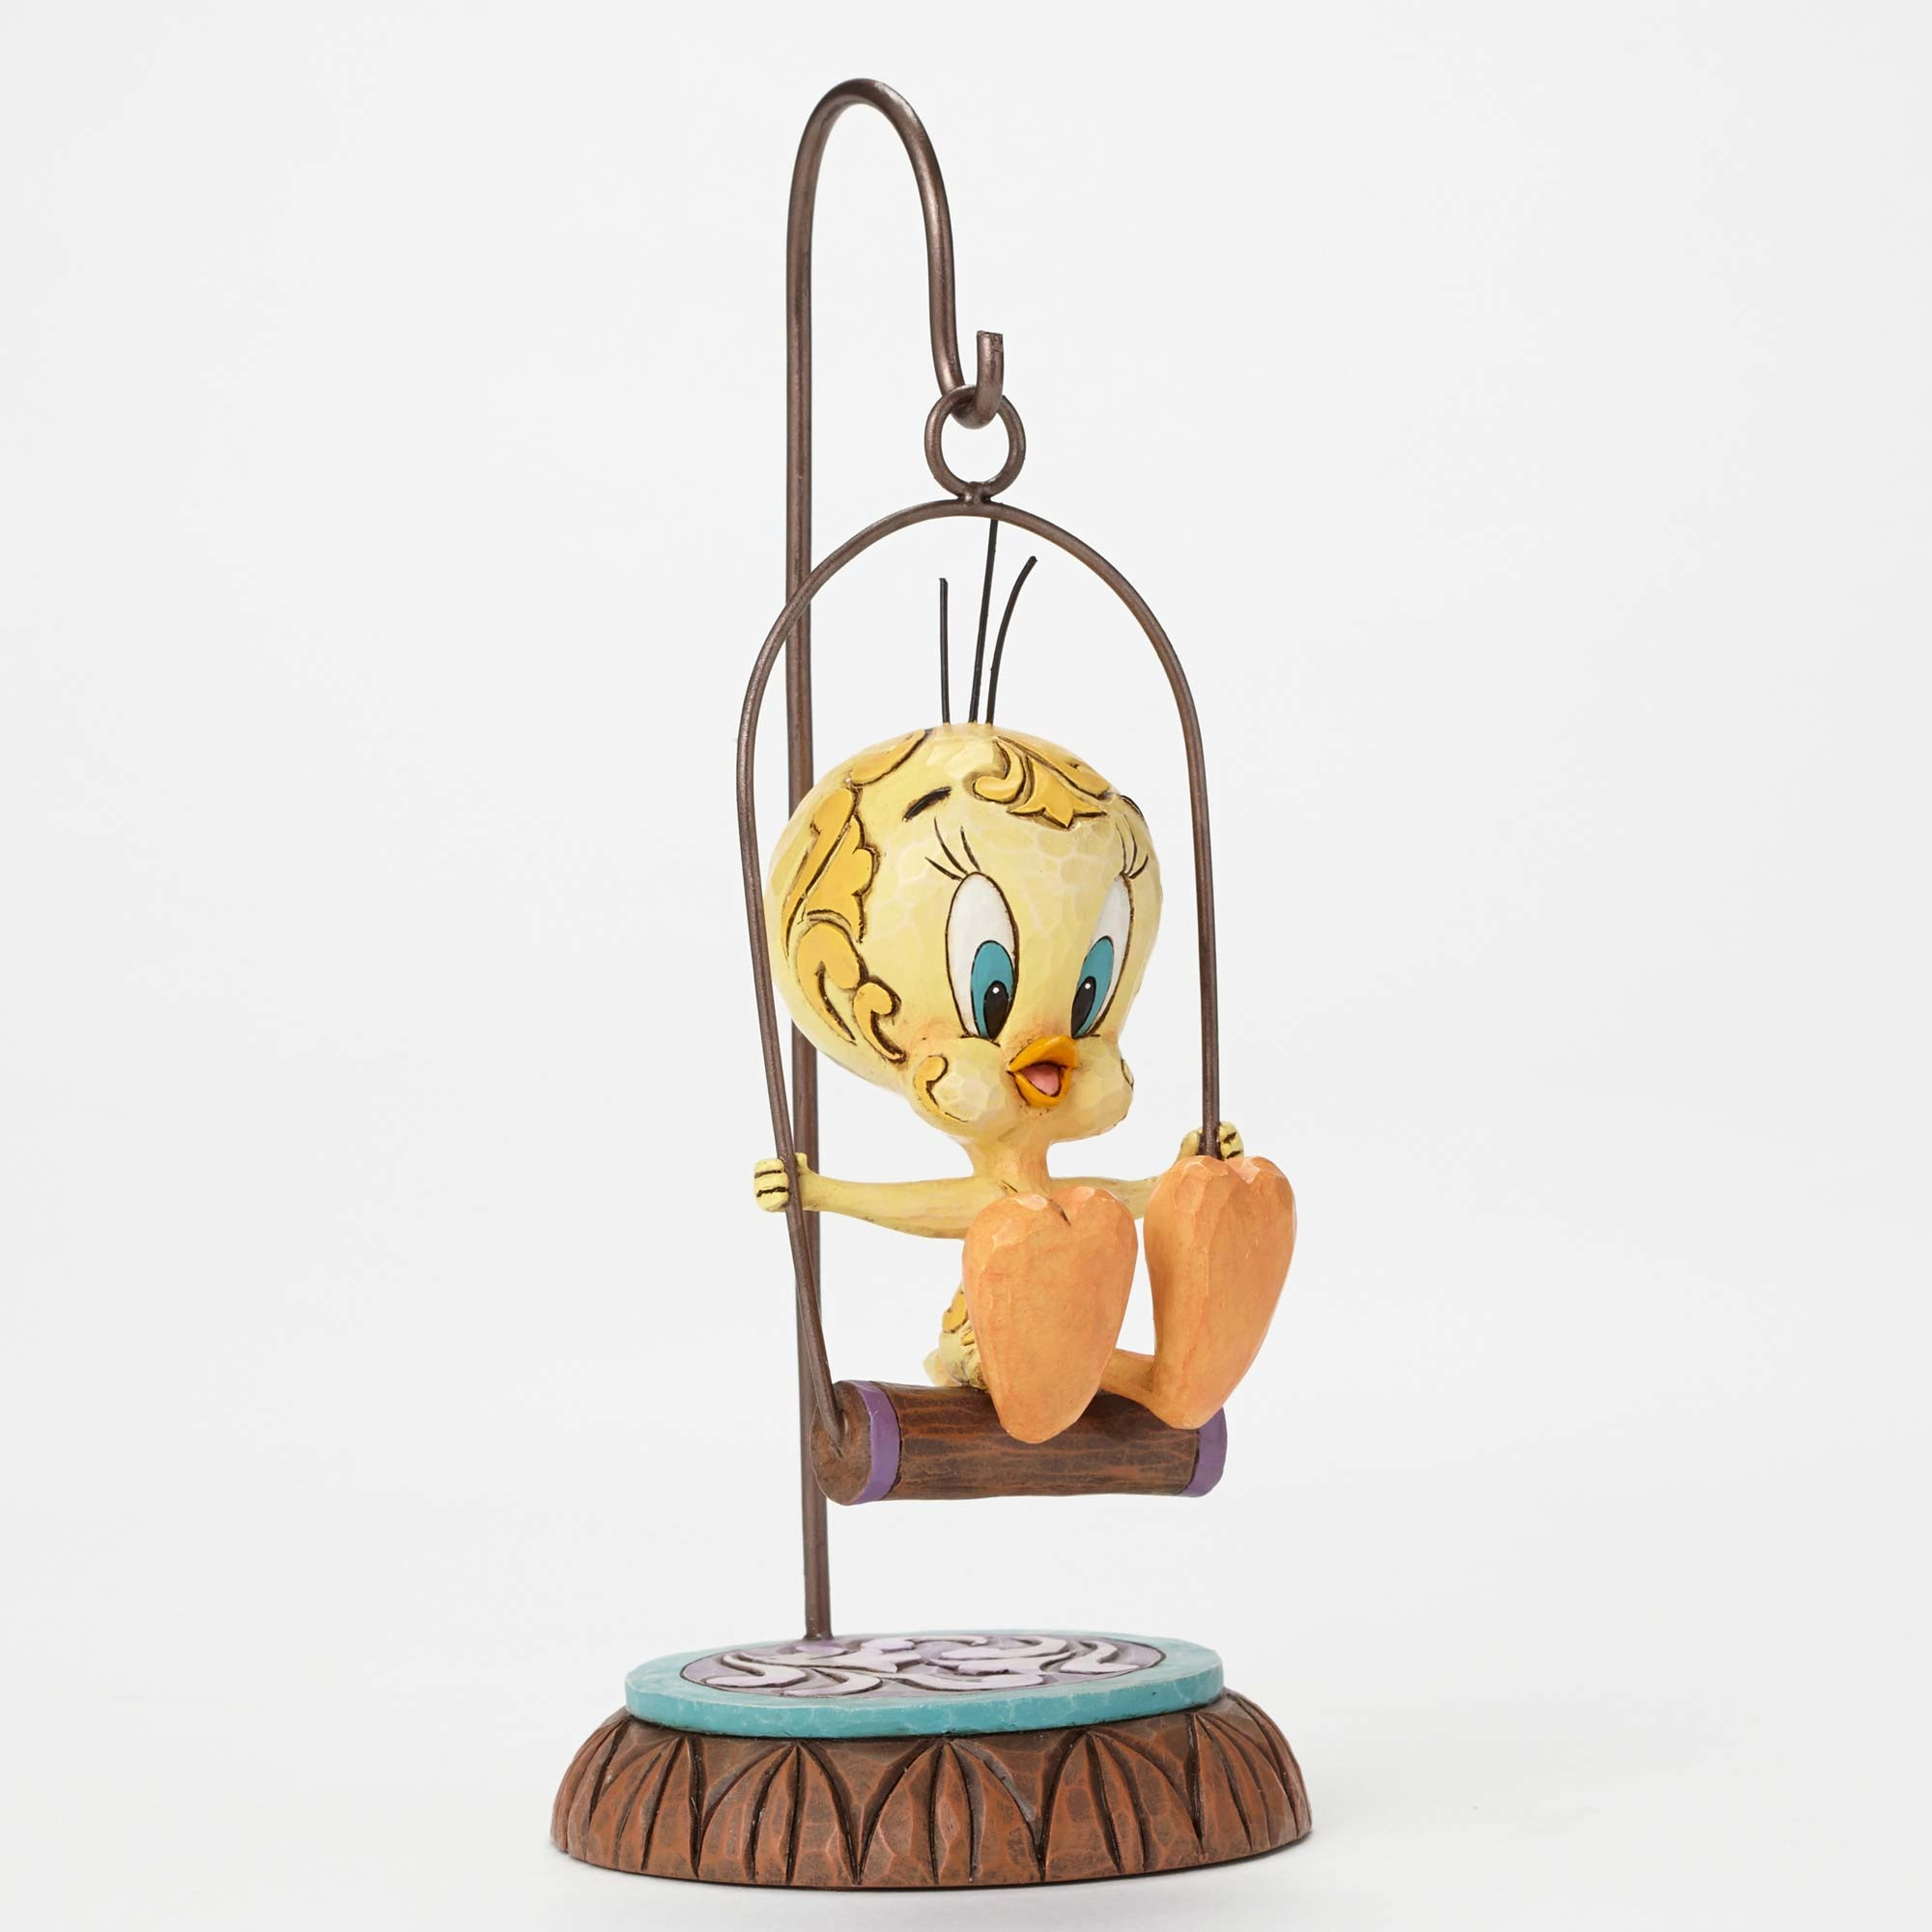 Tweety Bird - Oh Where Has My Puddy Tat Gone